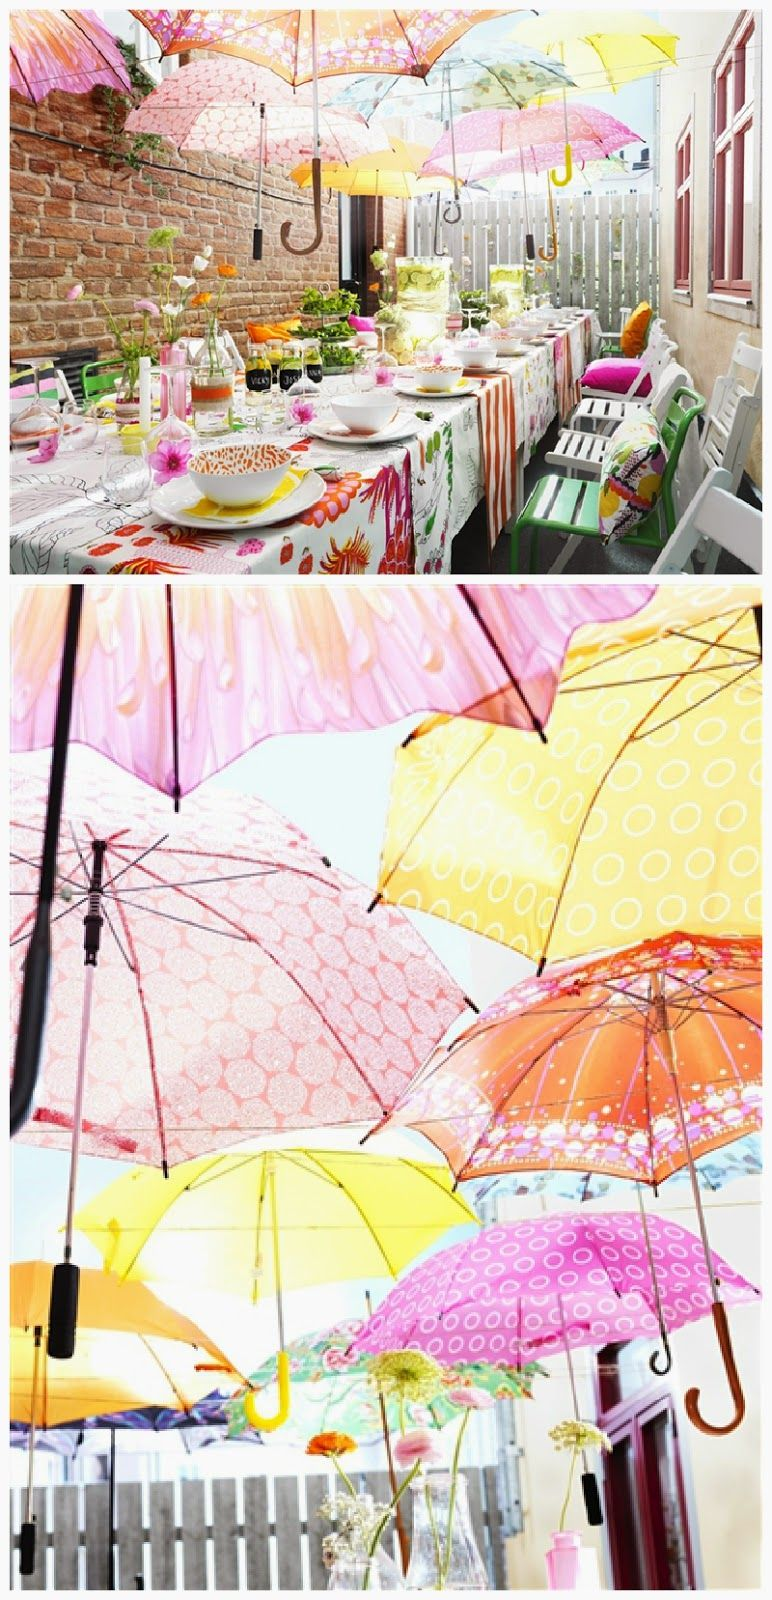 Garden party inspiration  Floating Umbrella Garden Party Inspiration  Holidays  Pinterest